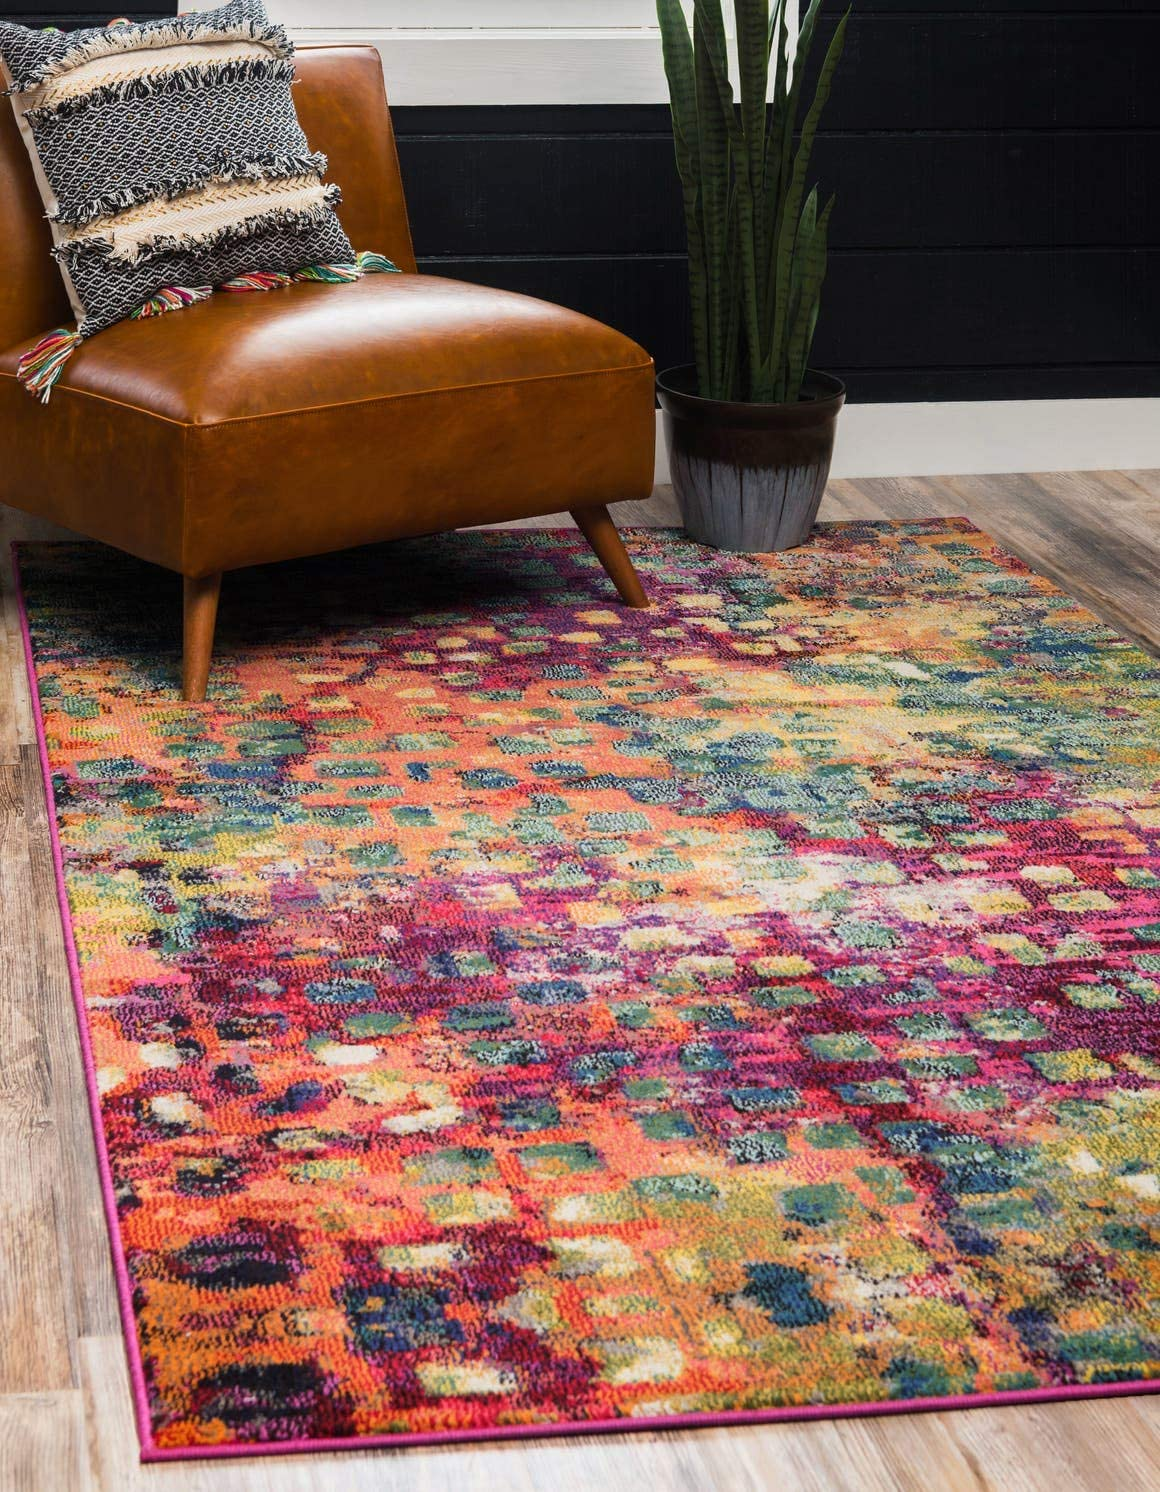 Unique Loom Jardin Collection Colorful Abstract Multi Area Rug 5 0 x 8 0